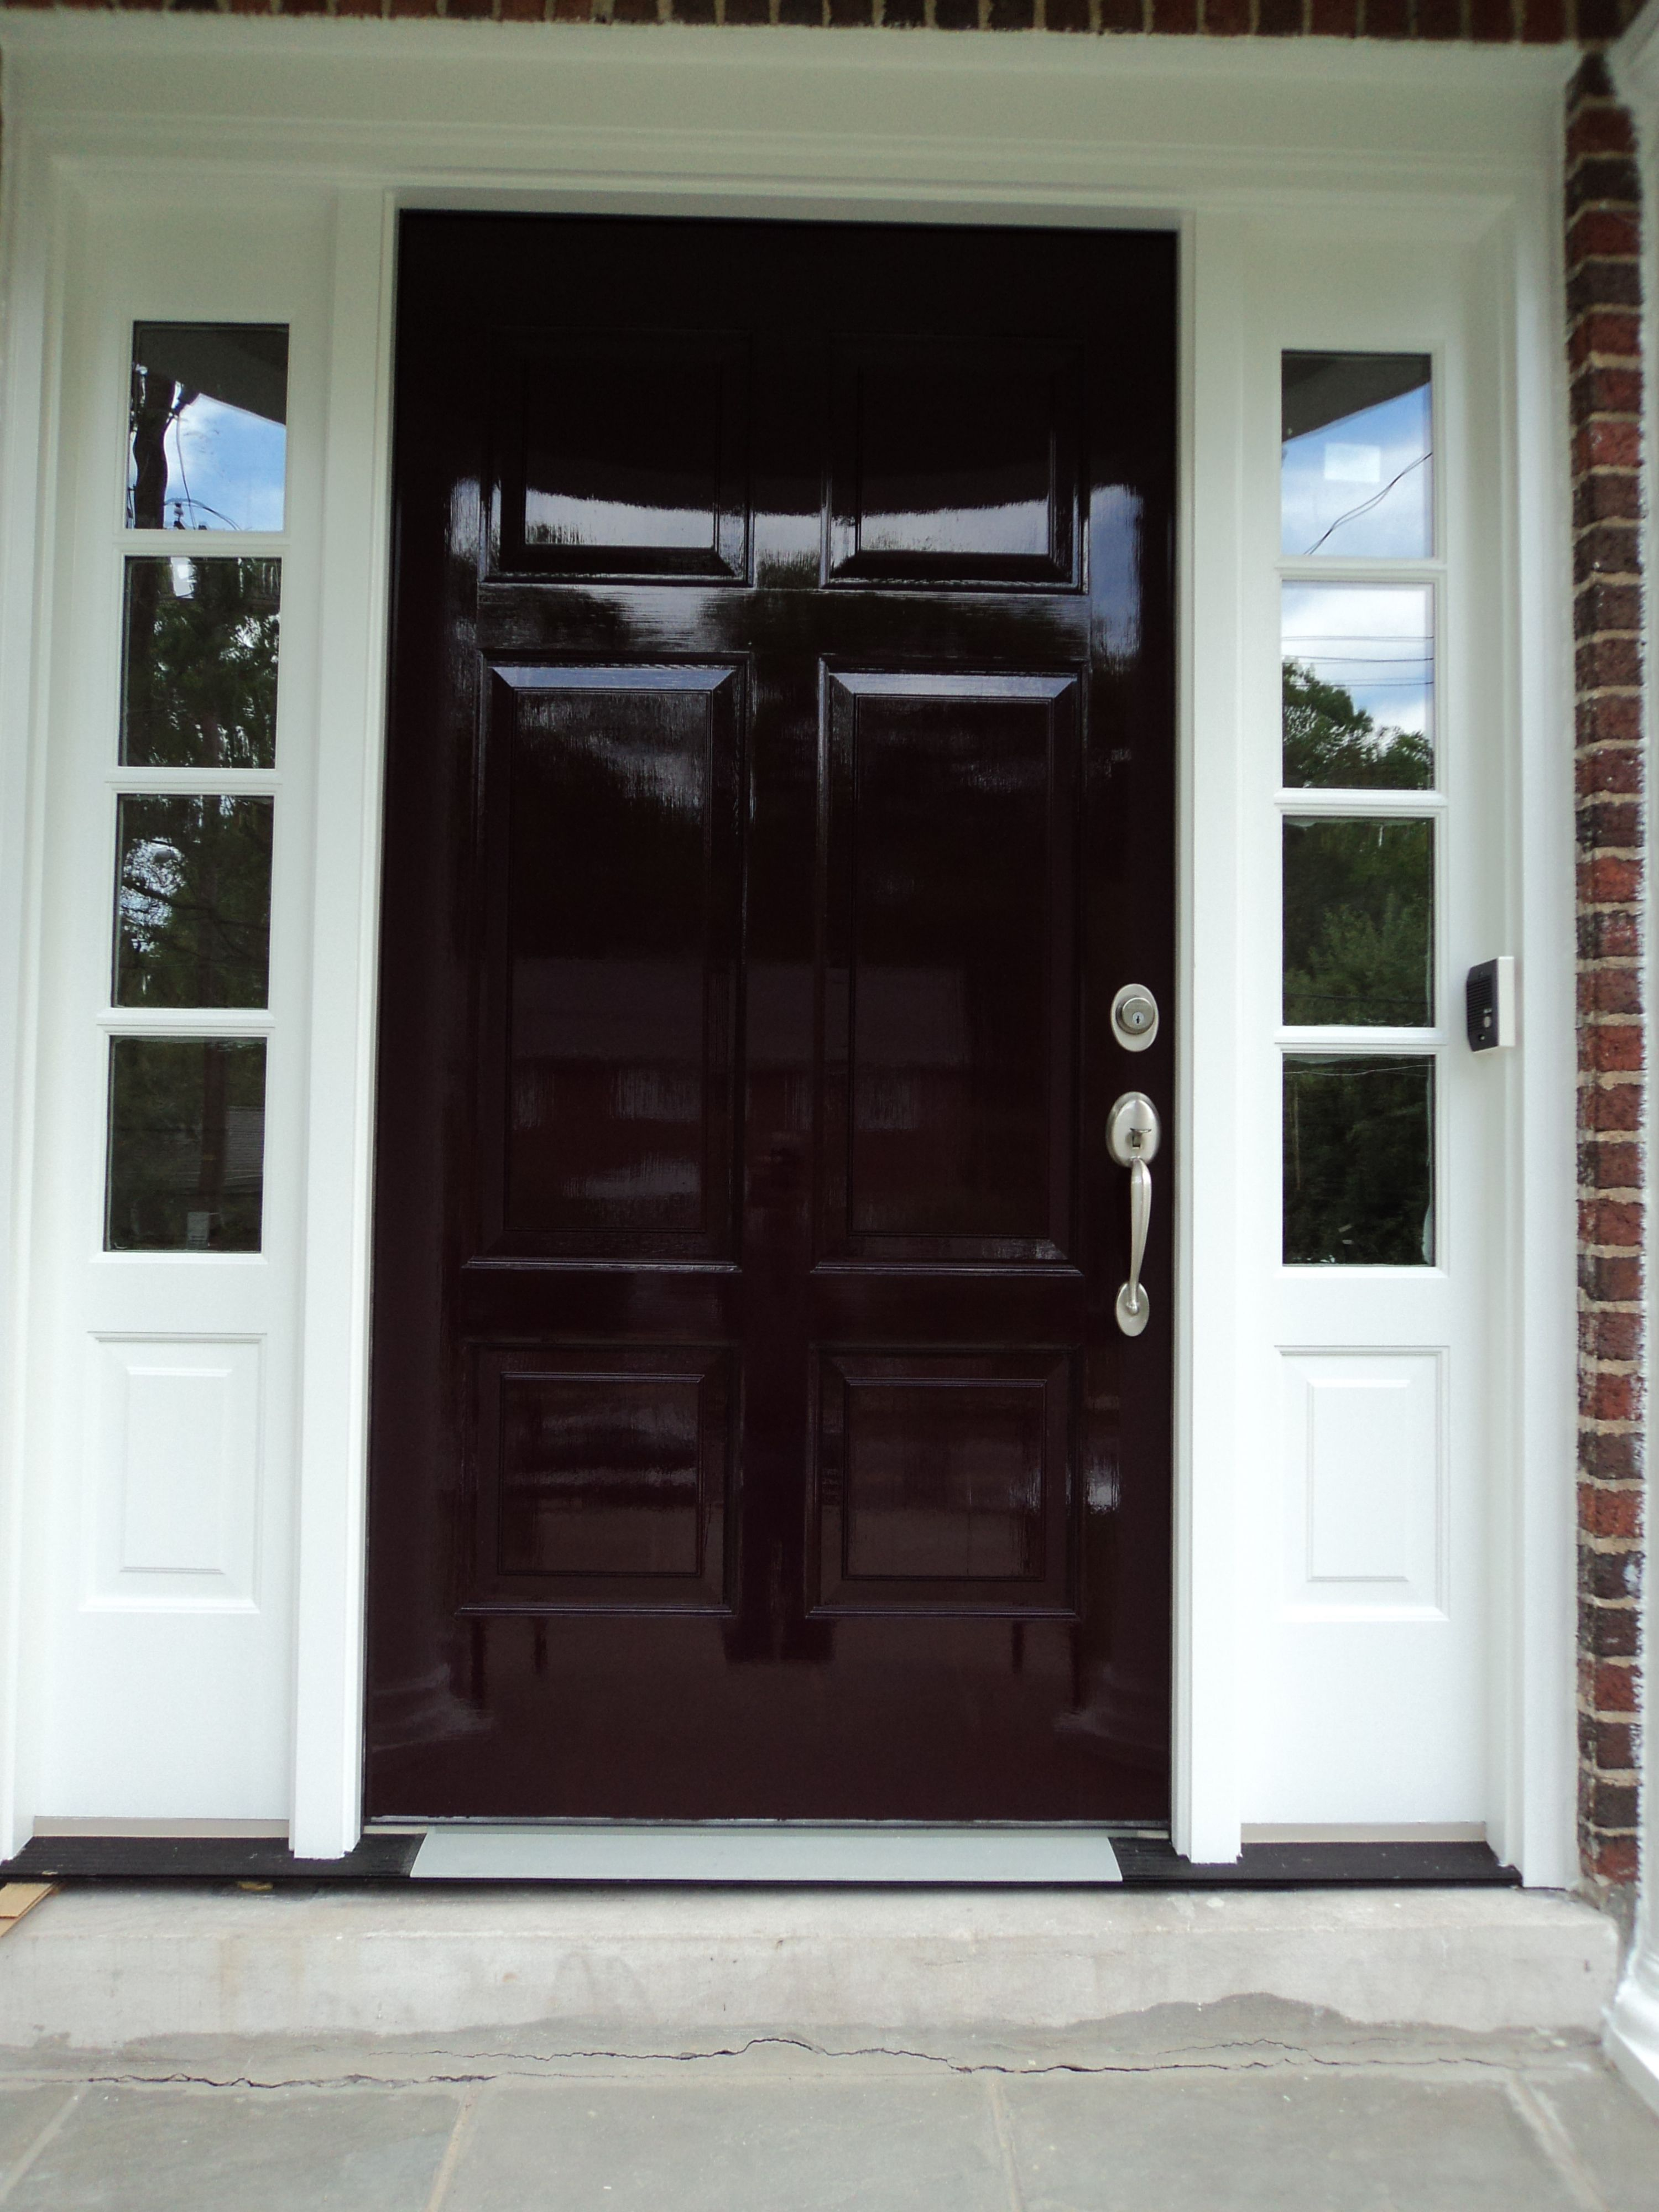 Pin By Eric Linkins On Eric Linkins Custom Painting House Front Door Design Fine Paints Of Europe Outdoor Remodel